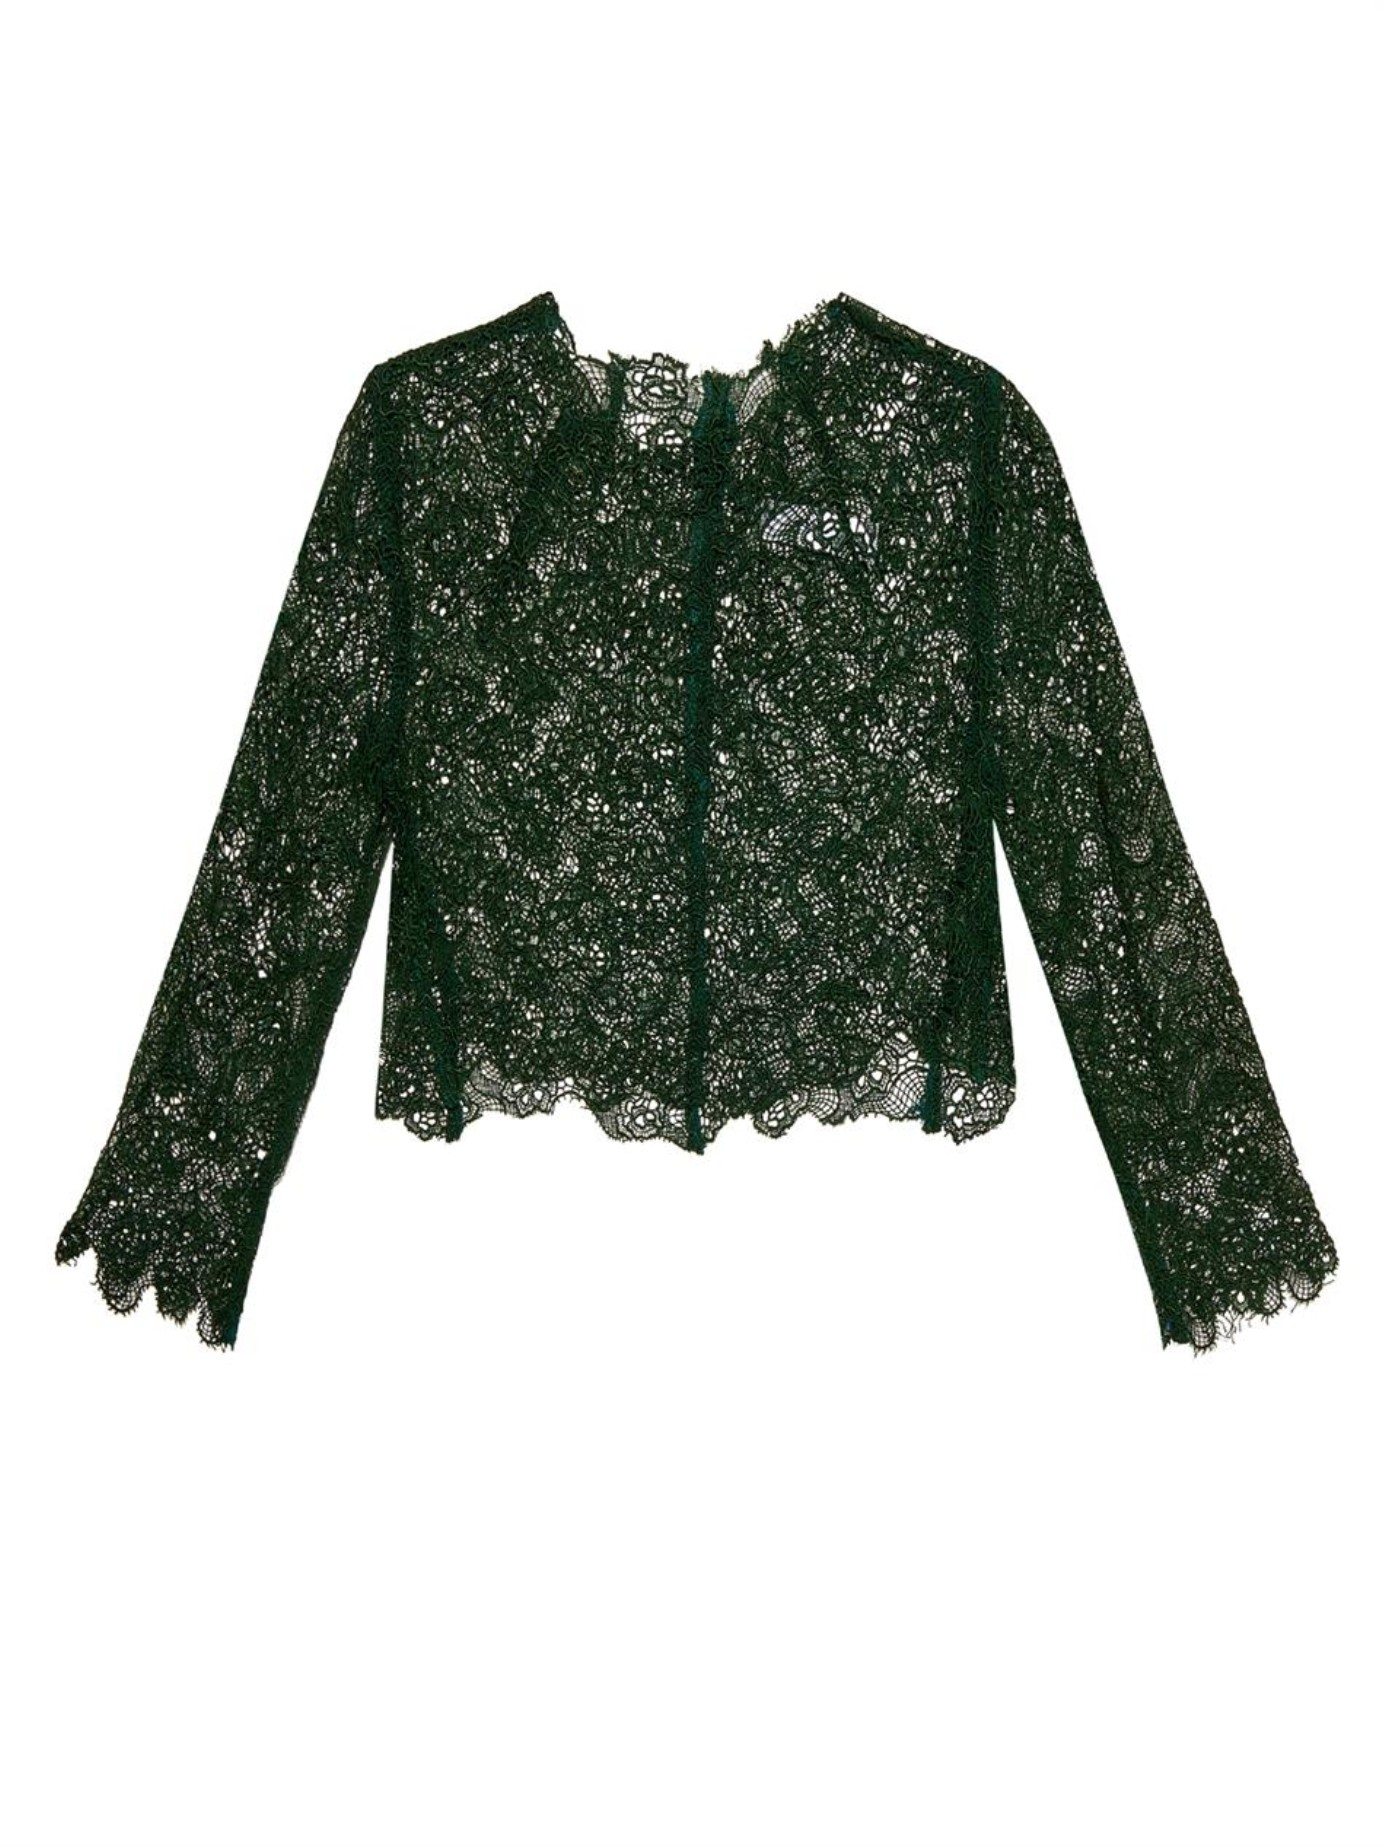 Toga Floral Lace Cropped Top in Green - Lyst